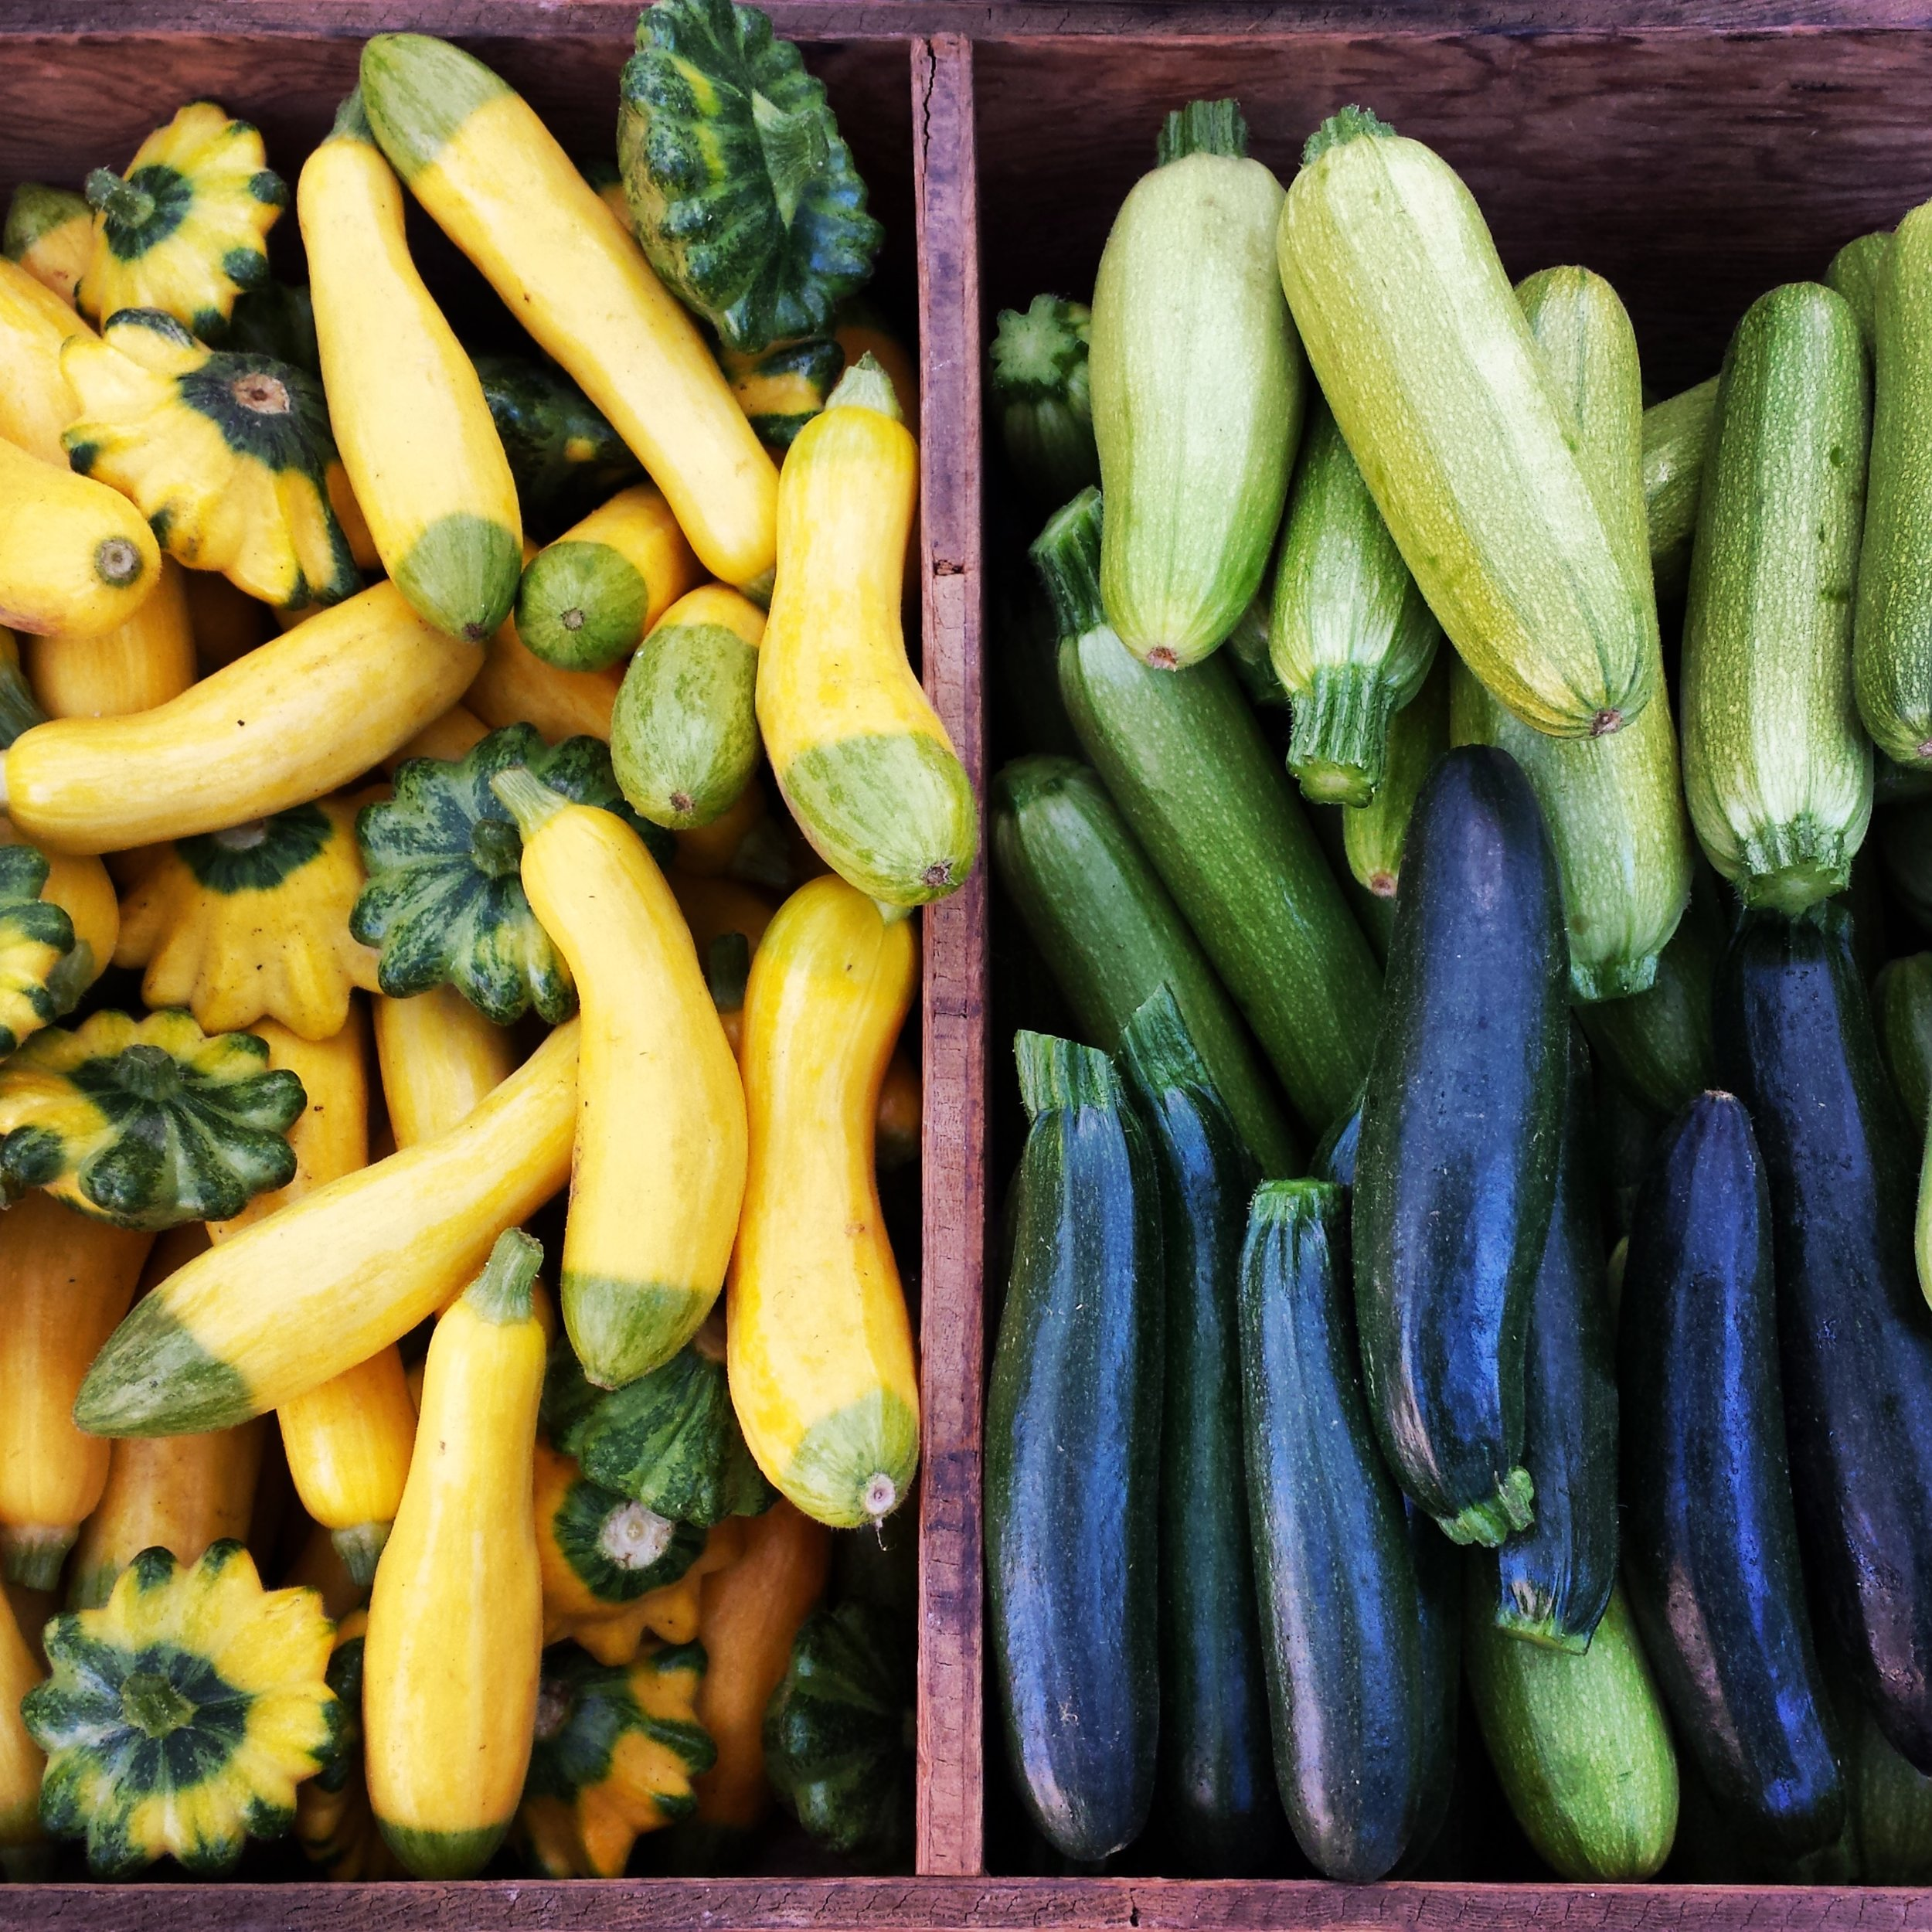 Zucchini & Summer Squash : Green, Gold, and Cousa Zucchini. Patty Pan and Zephyr Summer Squash.